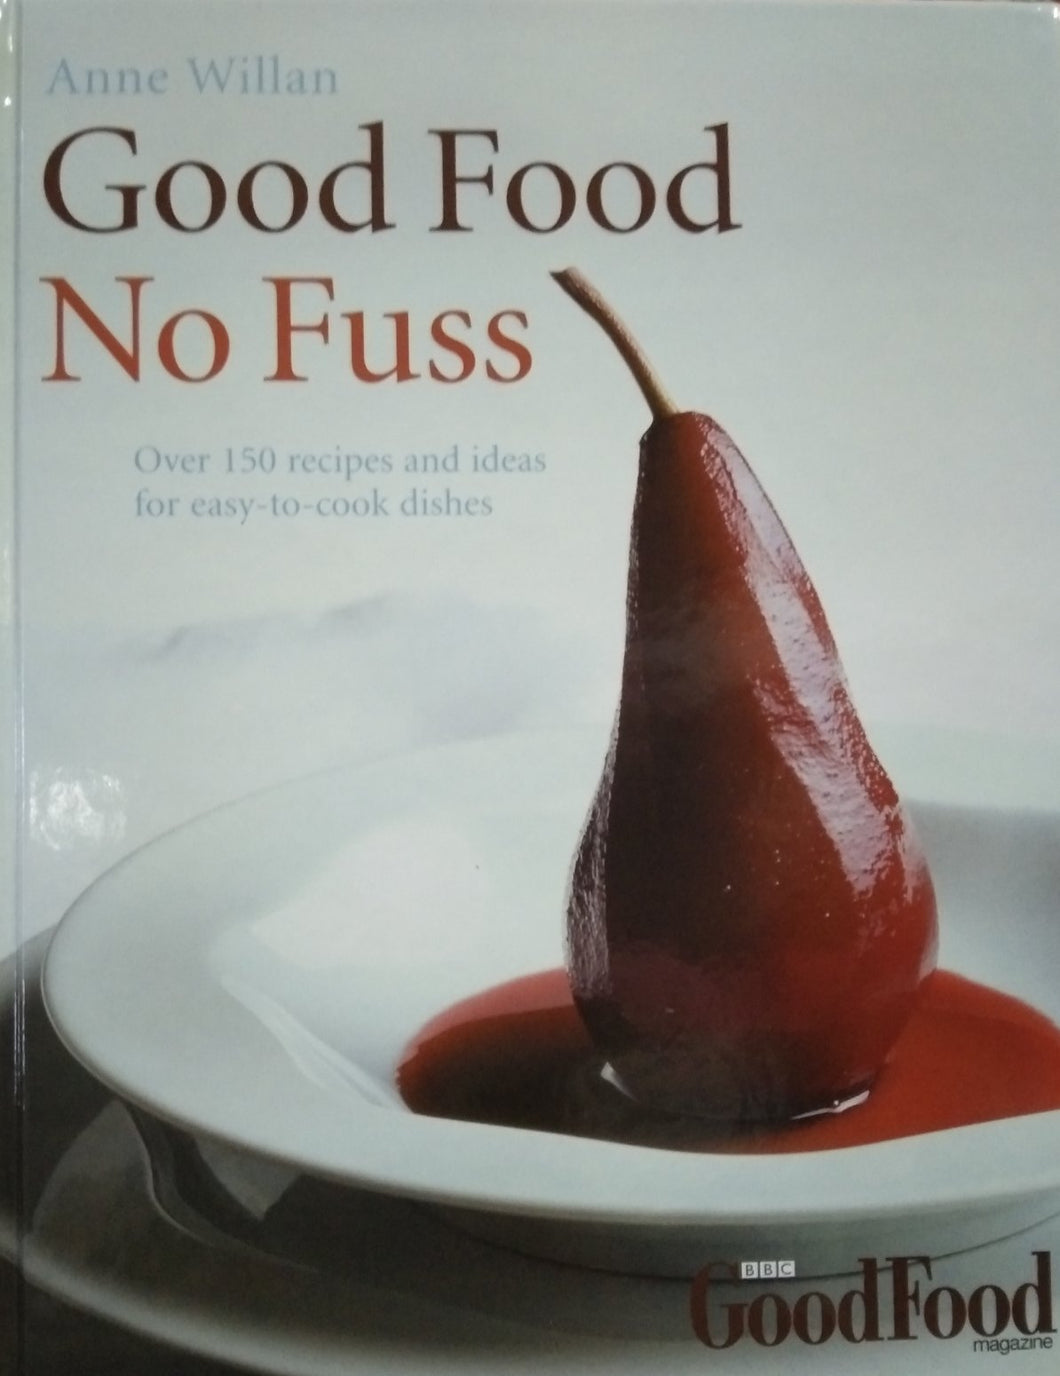 Good Food No Fuss by Anne Willan